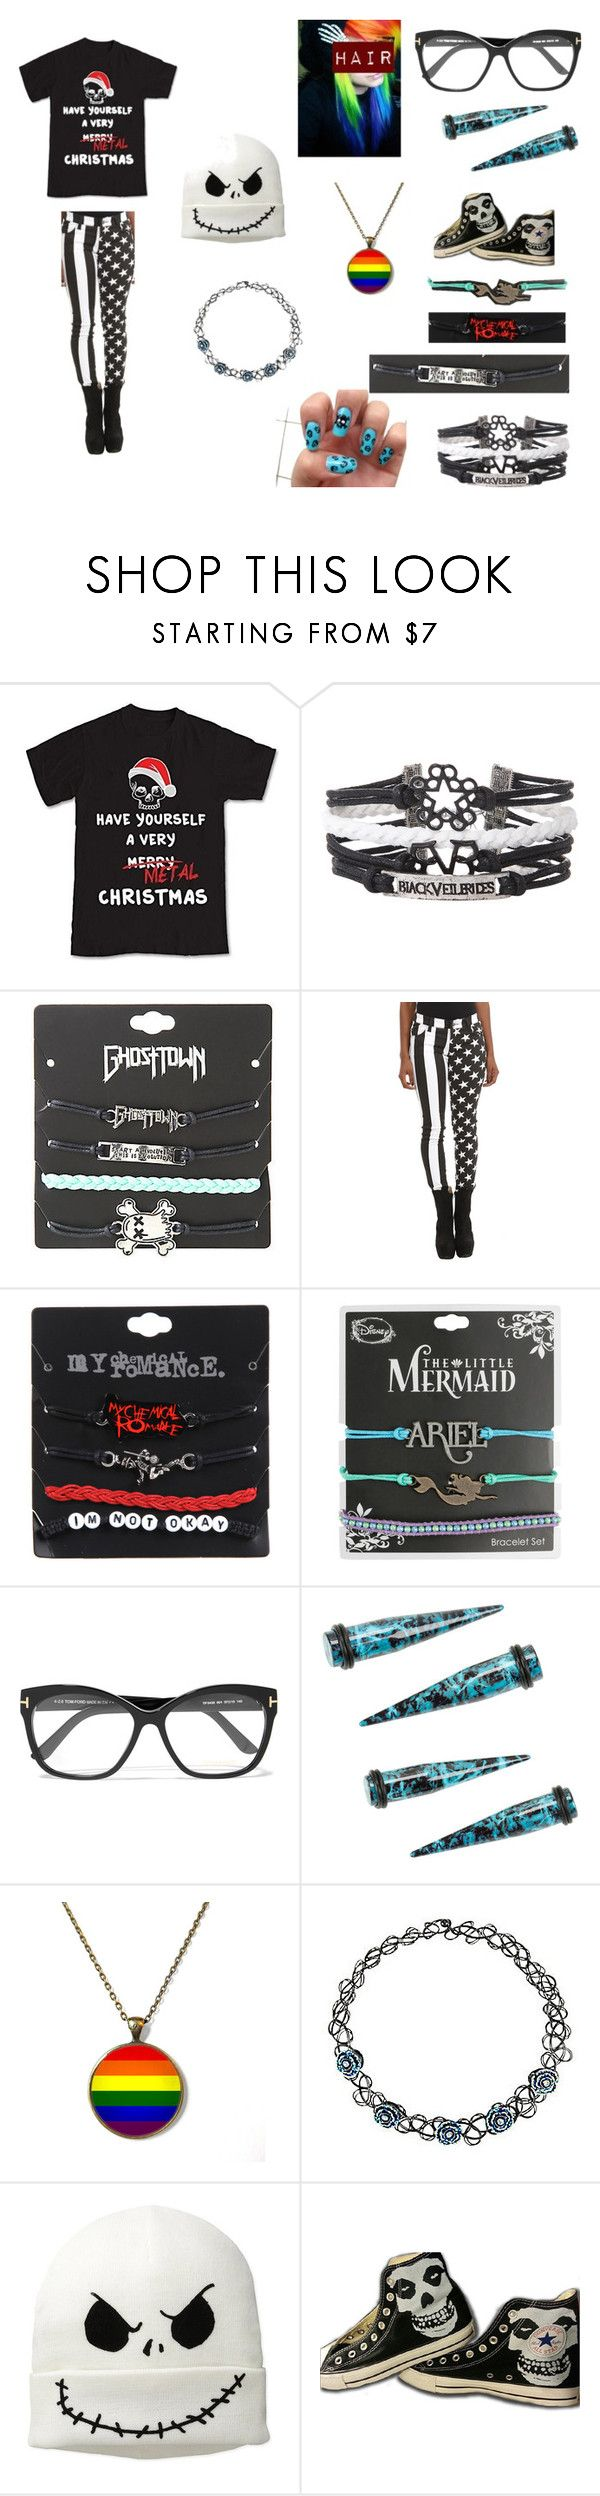 Have a Very Merry Metal Christmas by emo-mack on Polyvore featuring Tripp, Disney, Converse, Hot Topic and Tom Ford